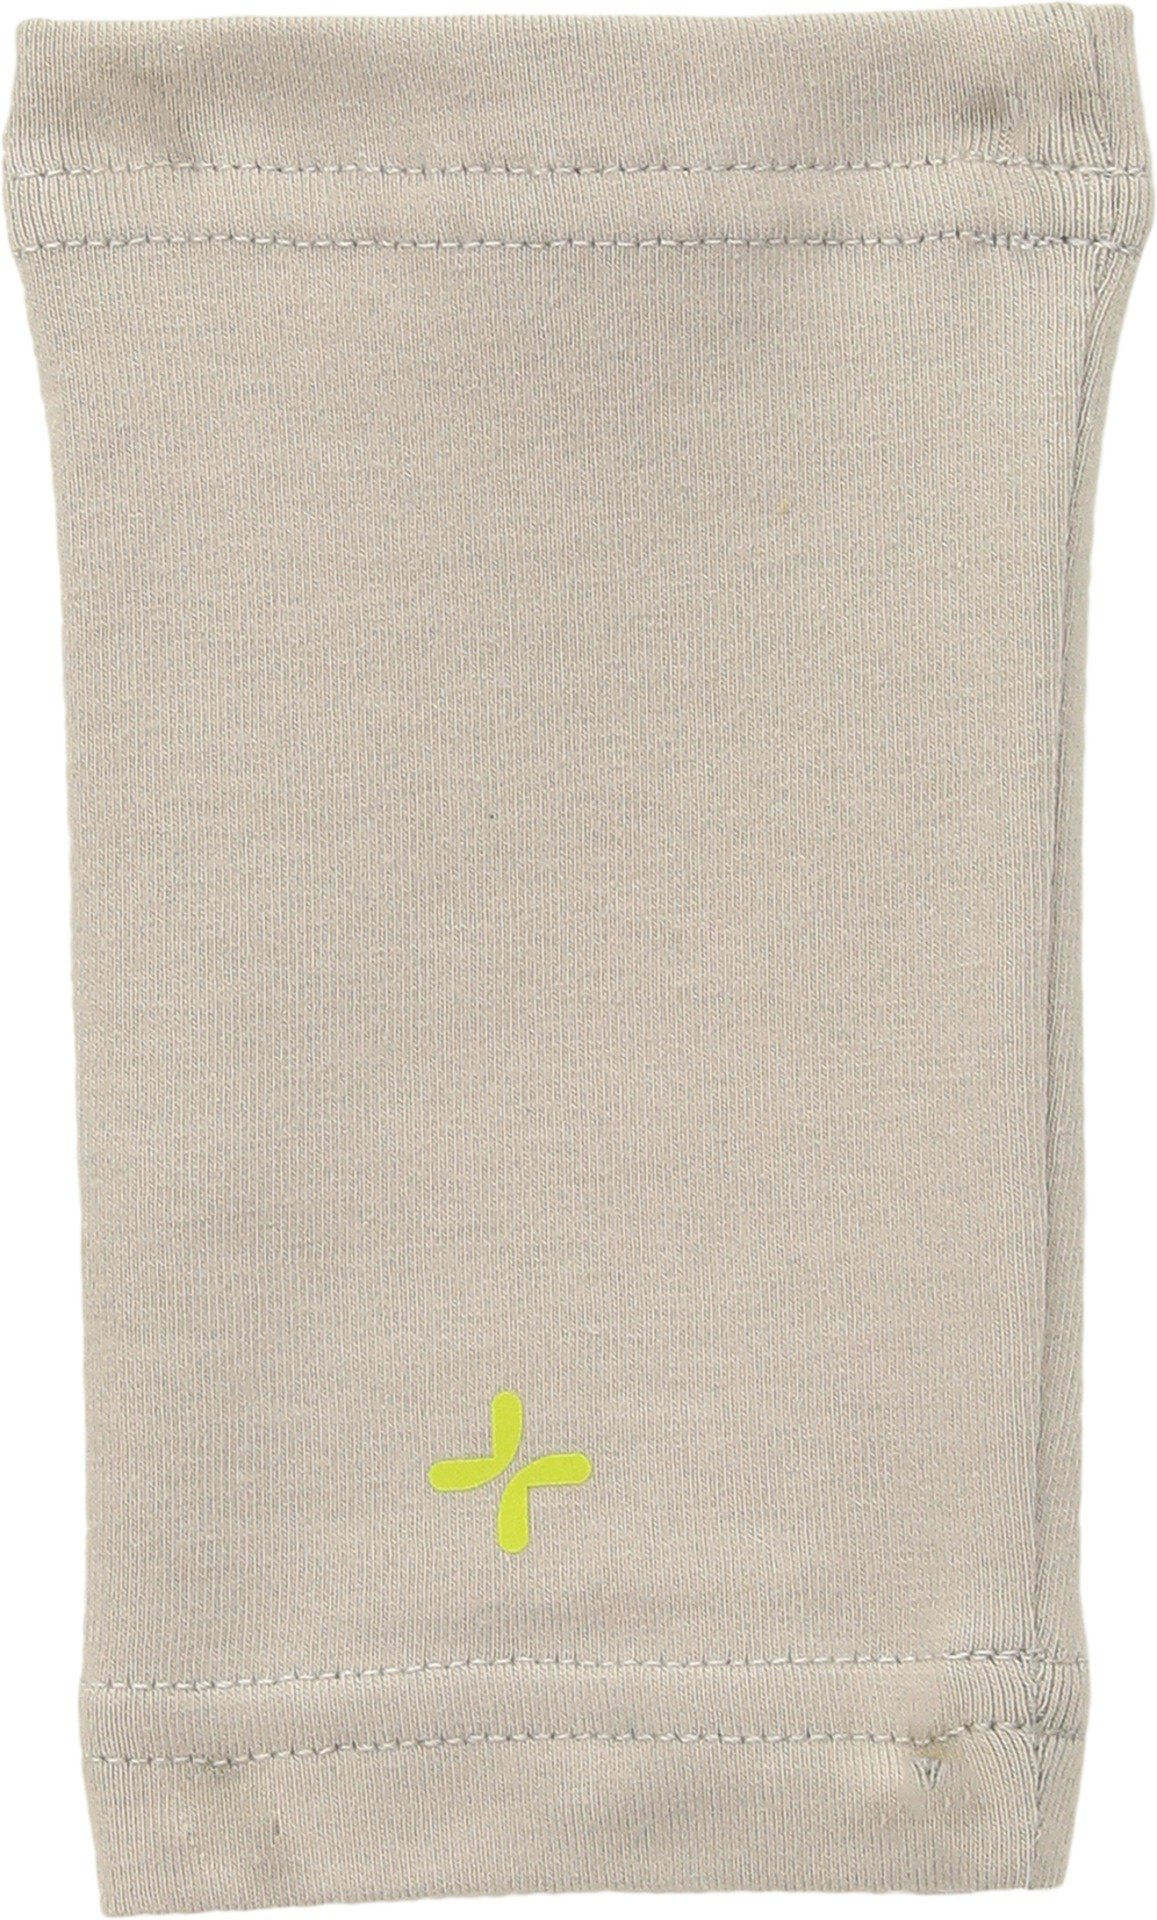 Care+Wear Unisex Ultra-Soft Antimicrobial PICC Line Cover Slate 9''-11'' Bicep